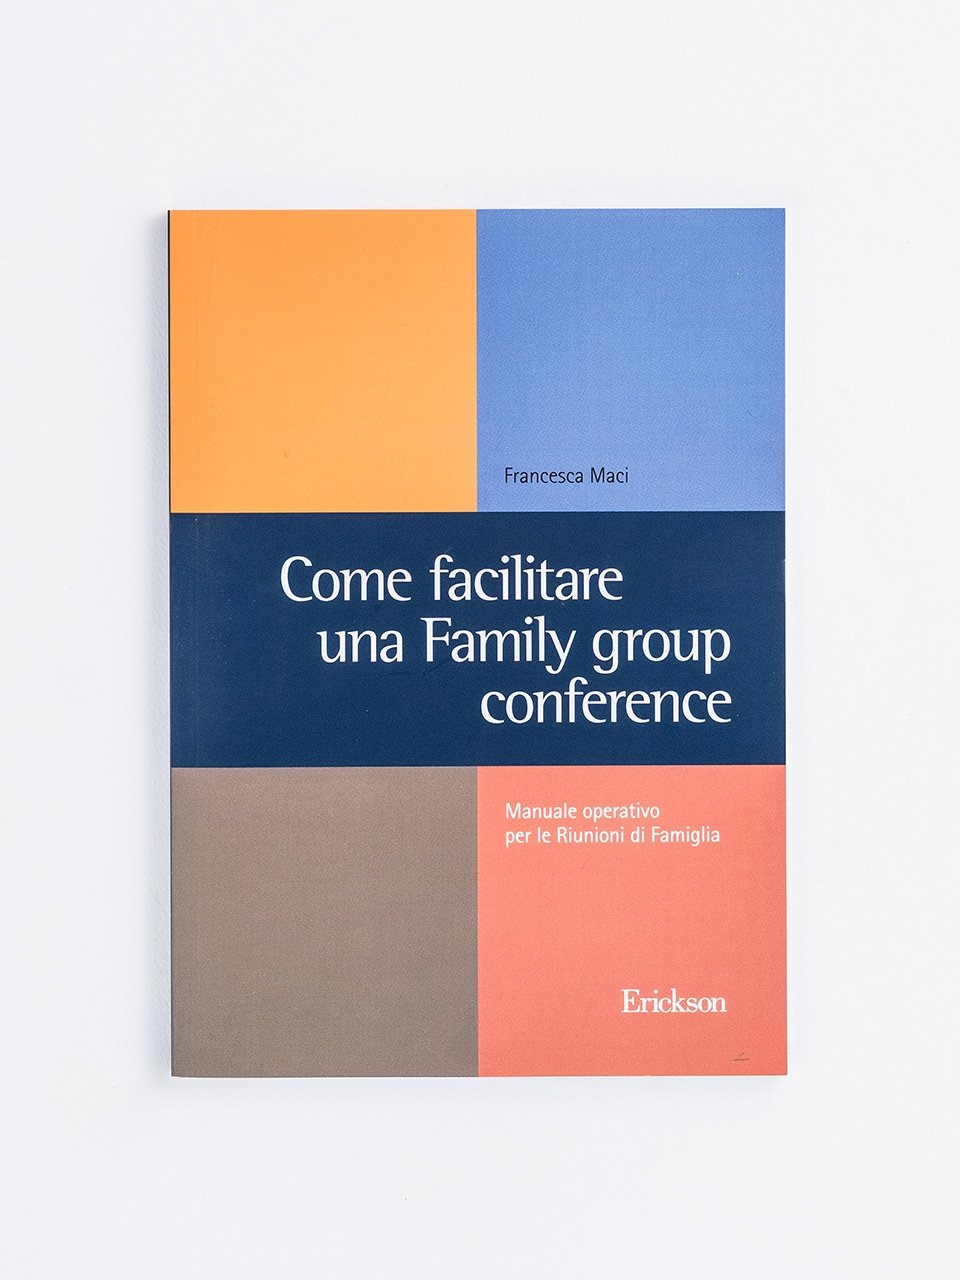 Come facilitare una Family group conference - SUPER RIGHE 4-5 - Strumenti - Erickson